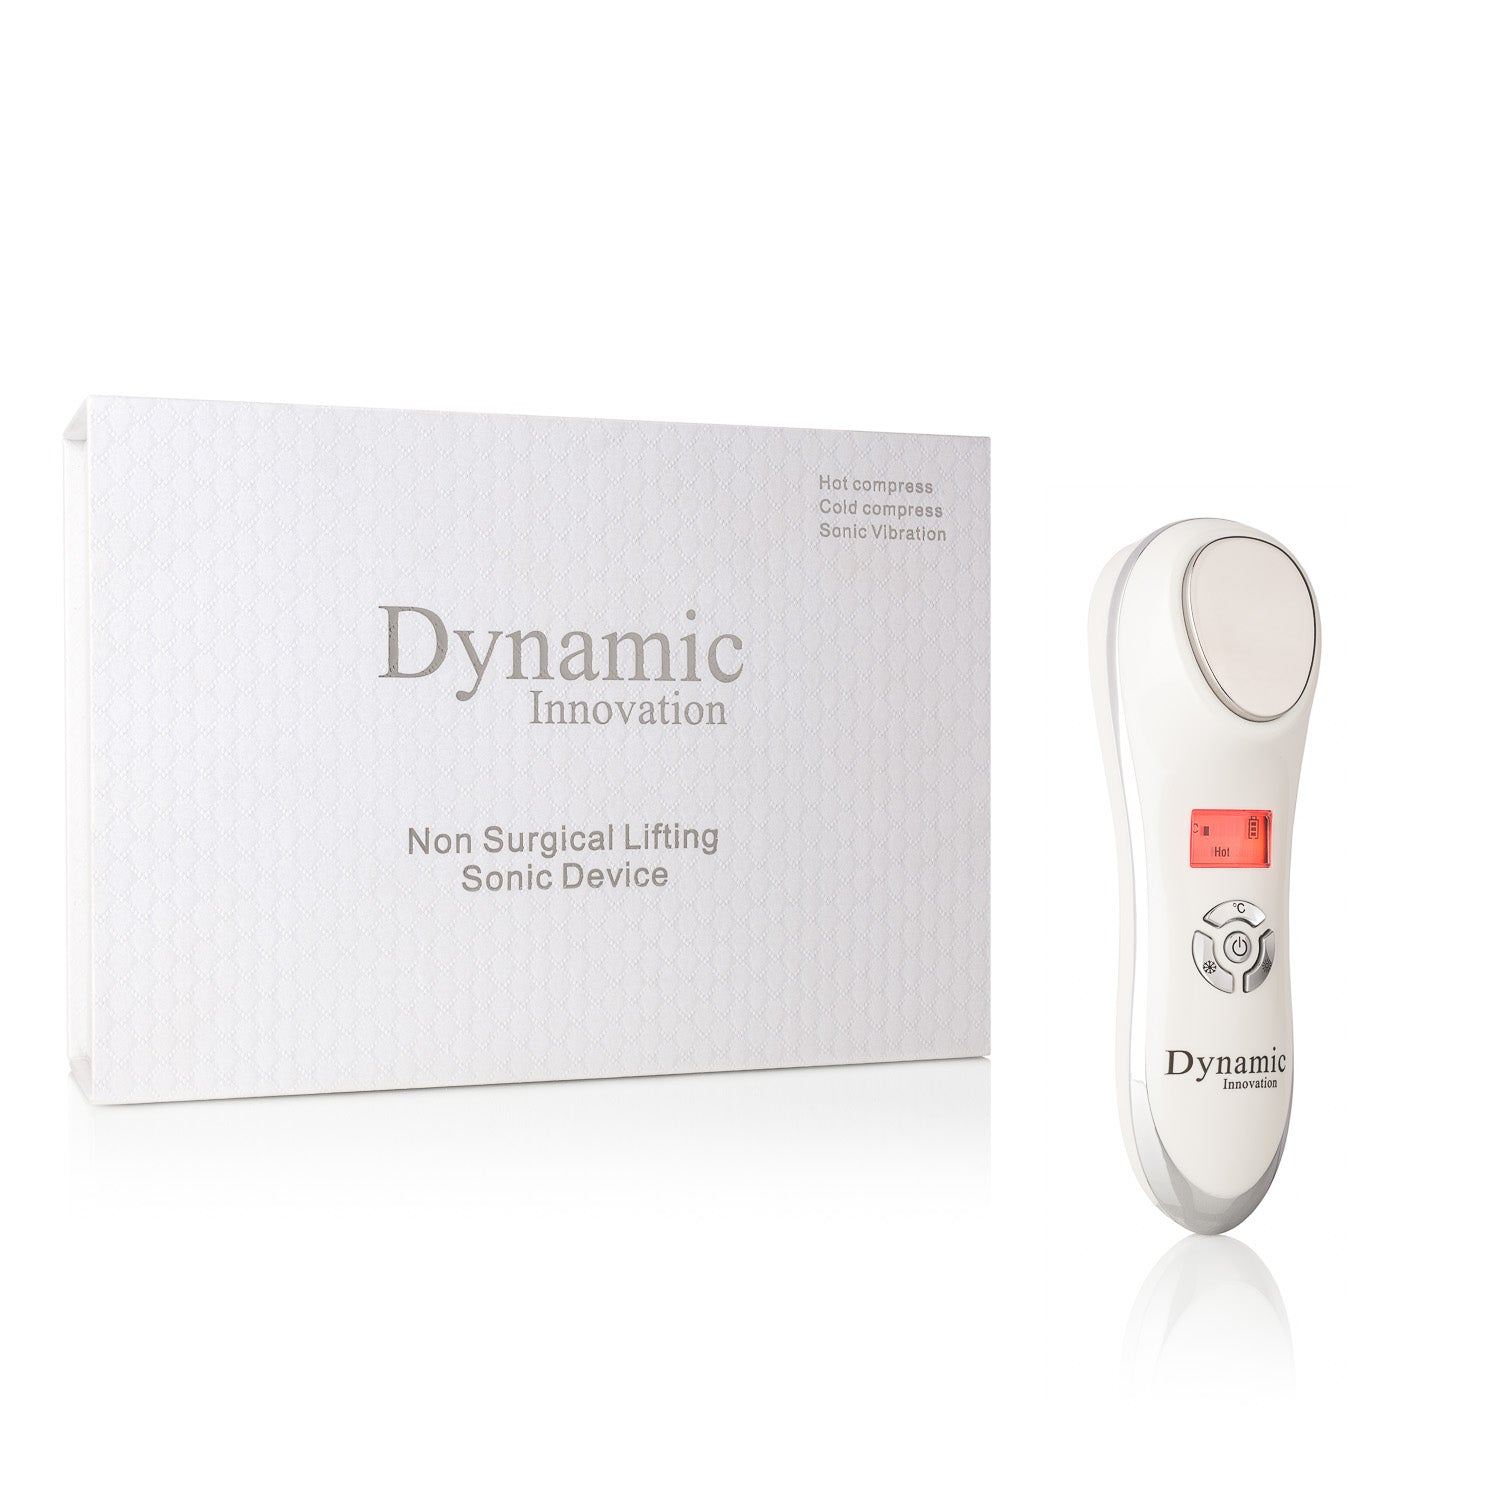 DYNAMIC INNOVATION - Digital Non-Surgical Anti-Aging Sonic Lifting & Pore Shrinking Device